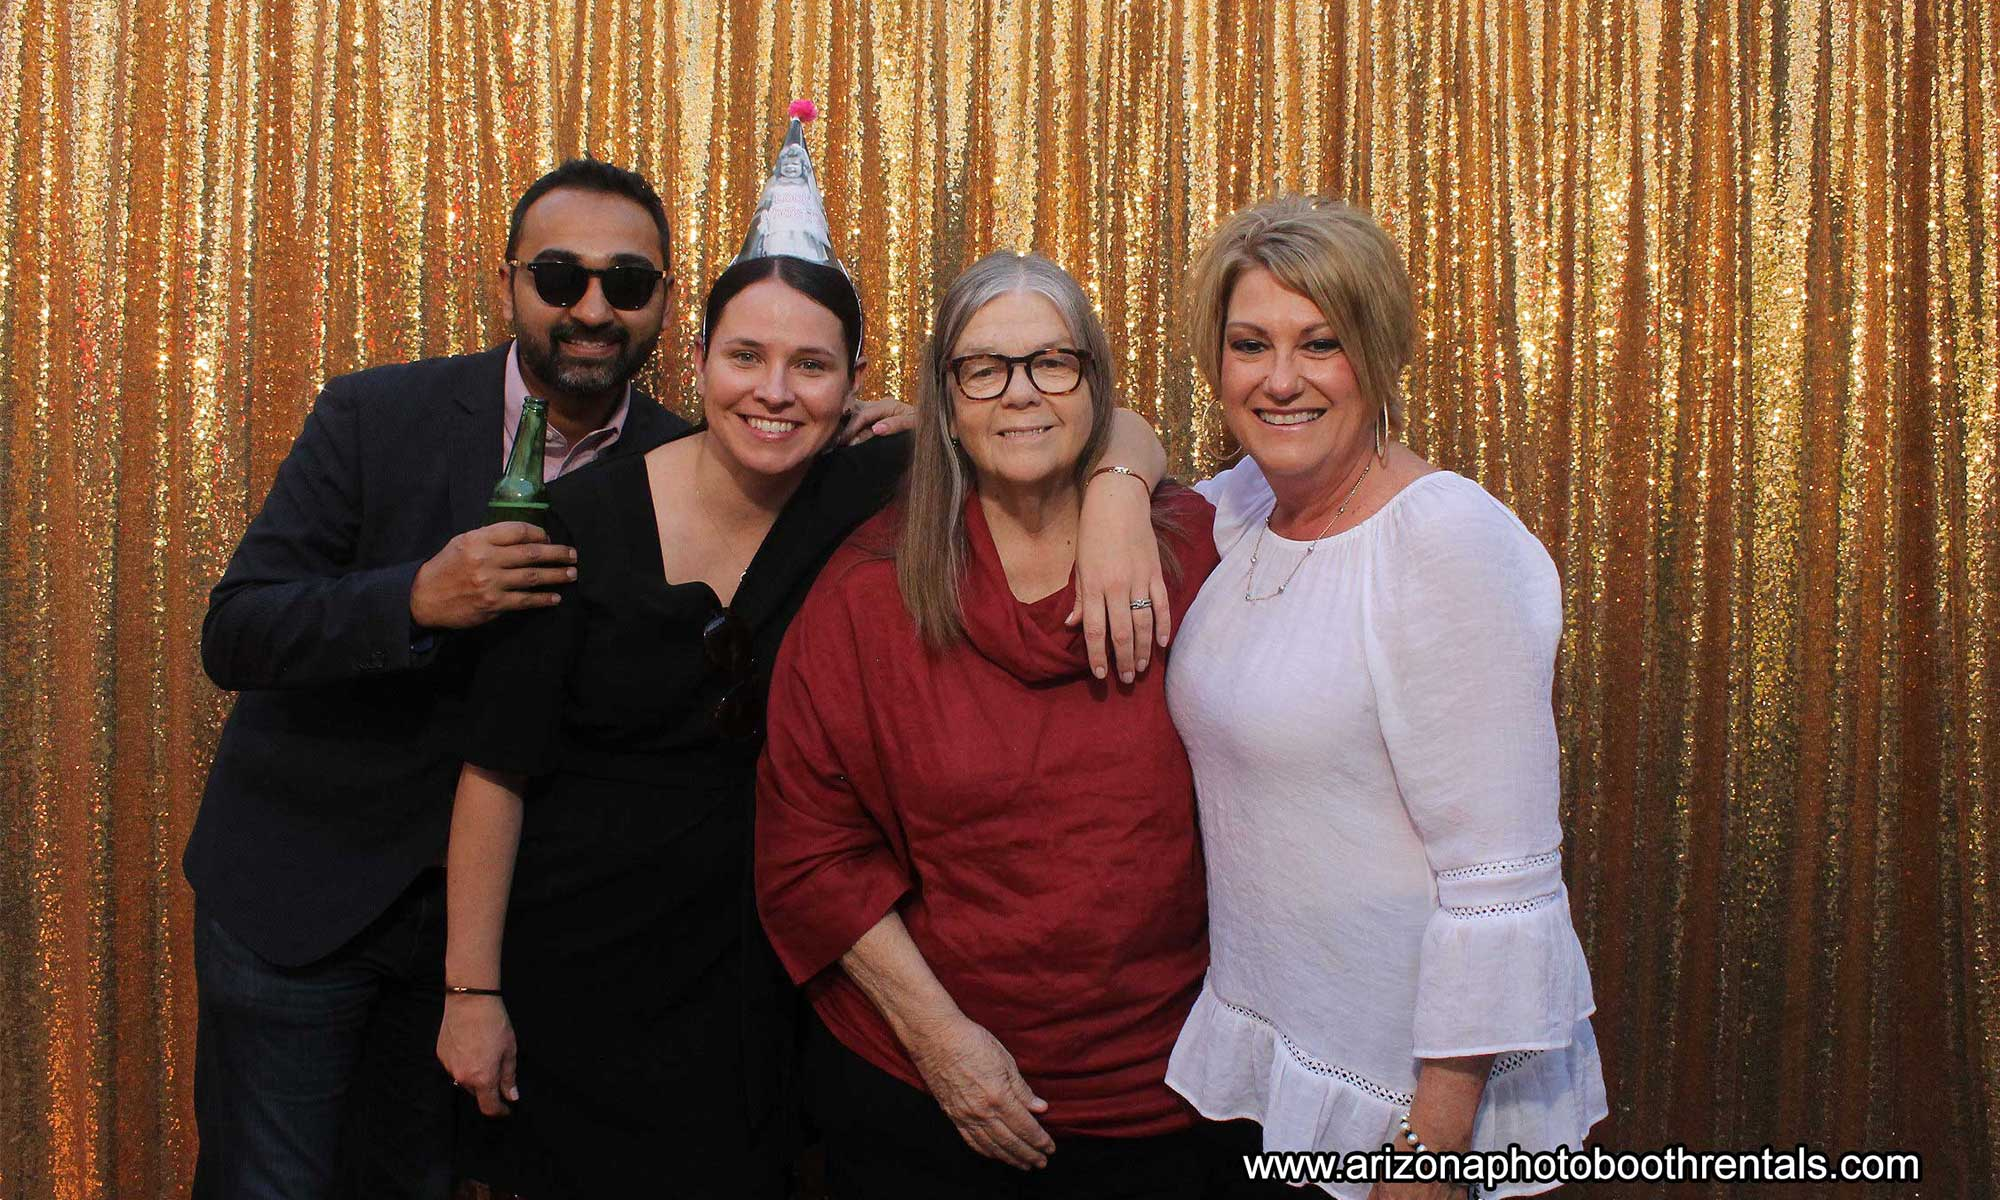 70th birthday photo booth